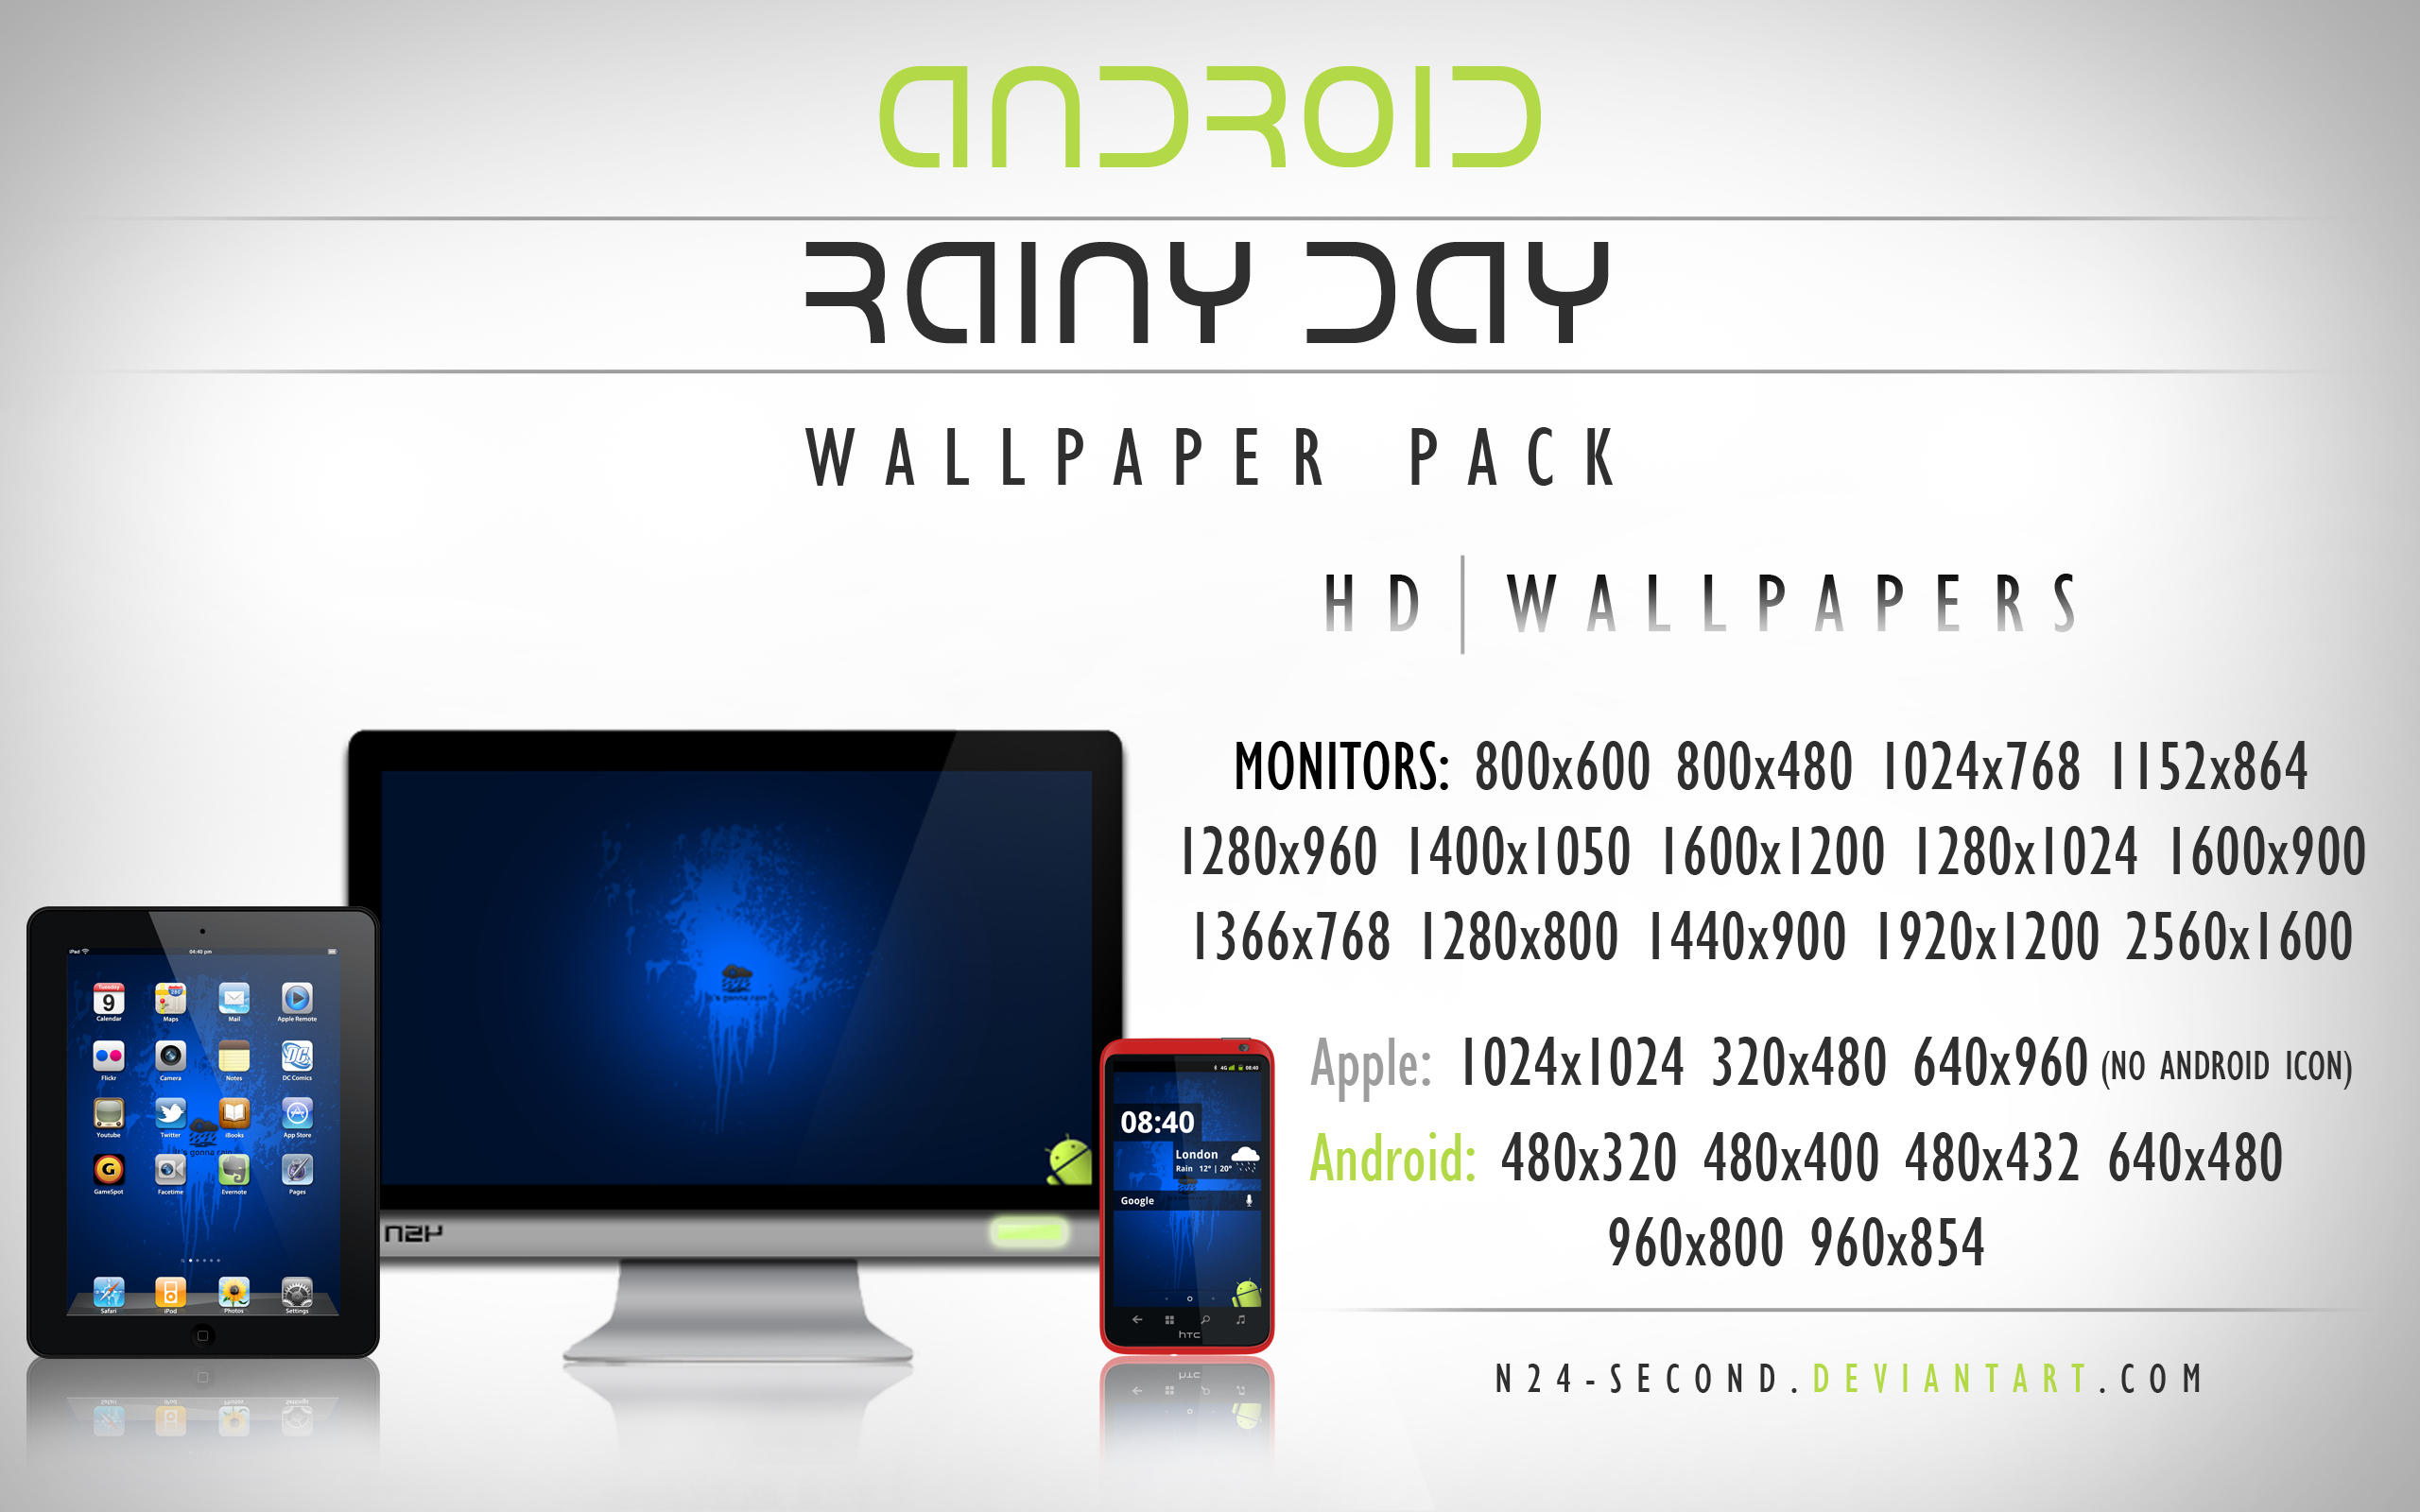 its gonna rain android wallpaper pack by n24 second